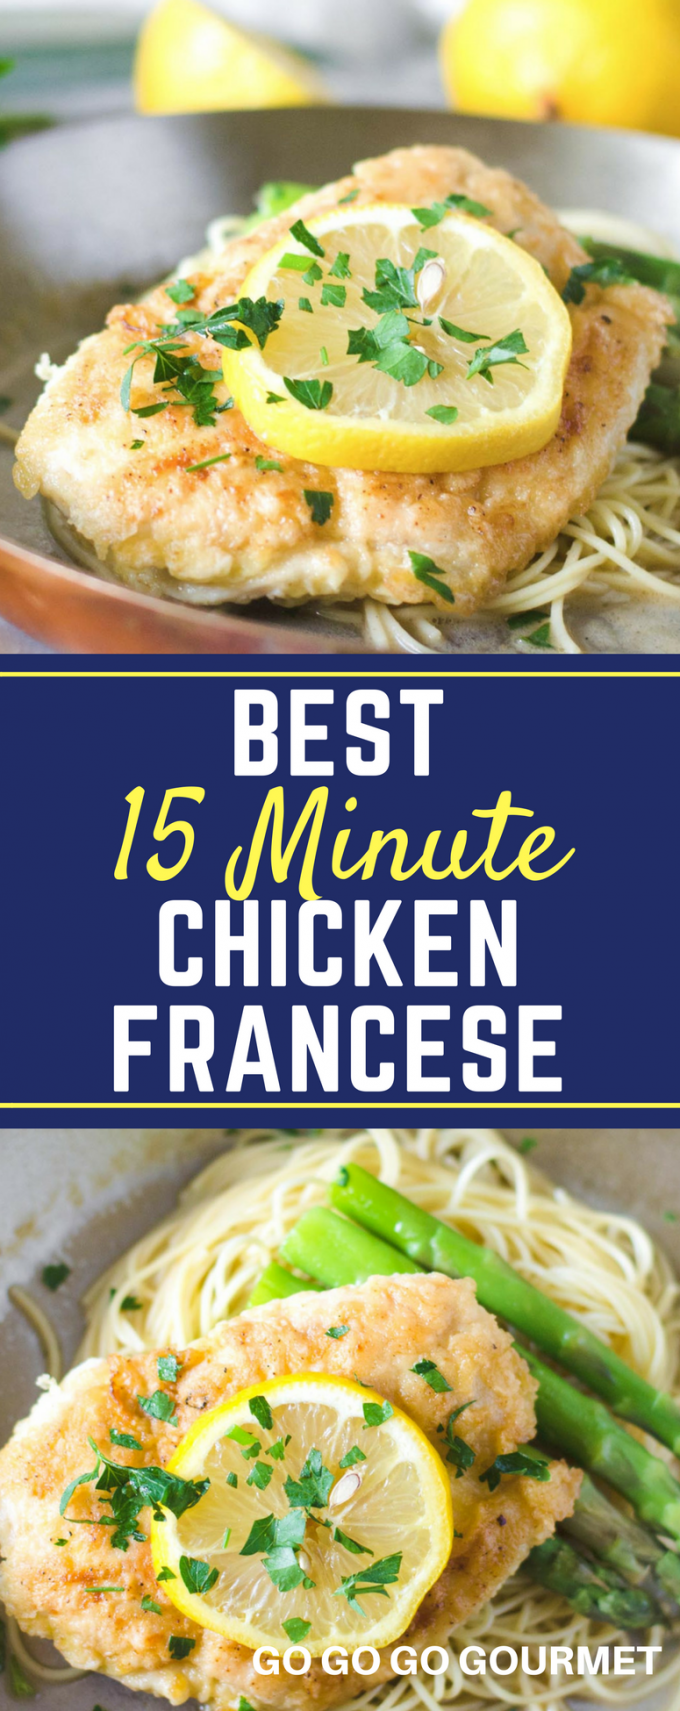 This Chicken Francese recipe is the best- and even healthy! A light and creamy sauce makes this dish perfect over pasta. So easy, its perfect for anything ranging from busy weeknight dinners to parties for a crowd! #chicken #italian #chickenrecipes #easydinner #gogogogourmet via @gogogogourmet